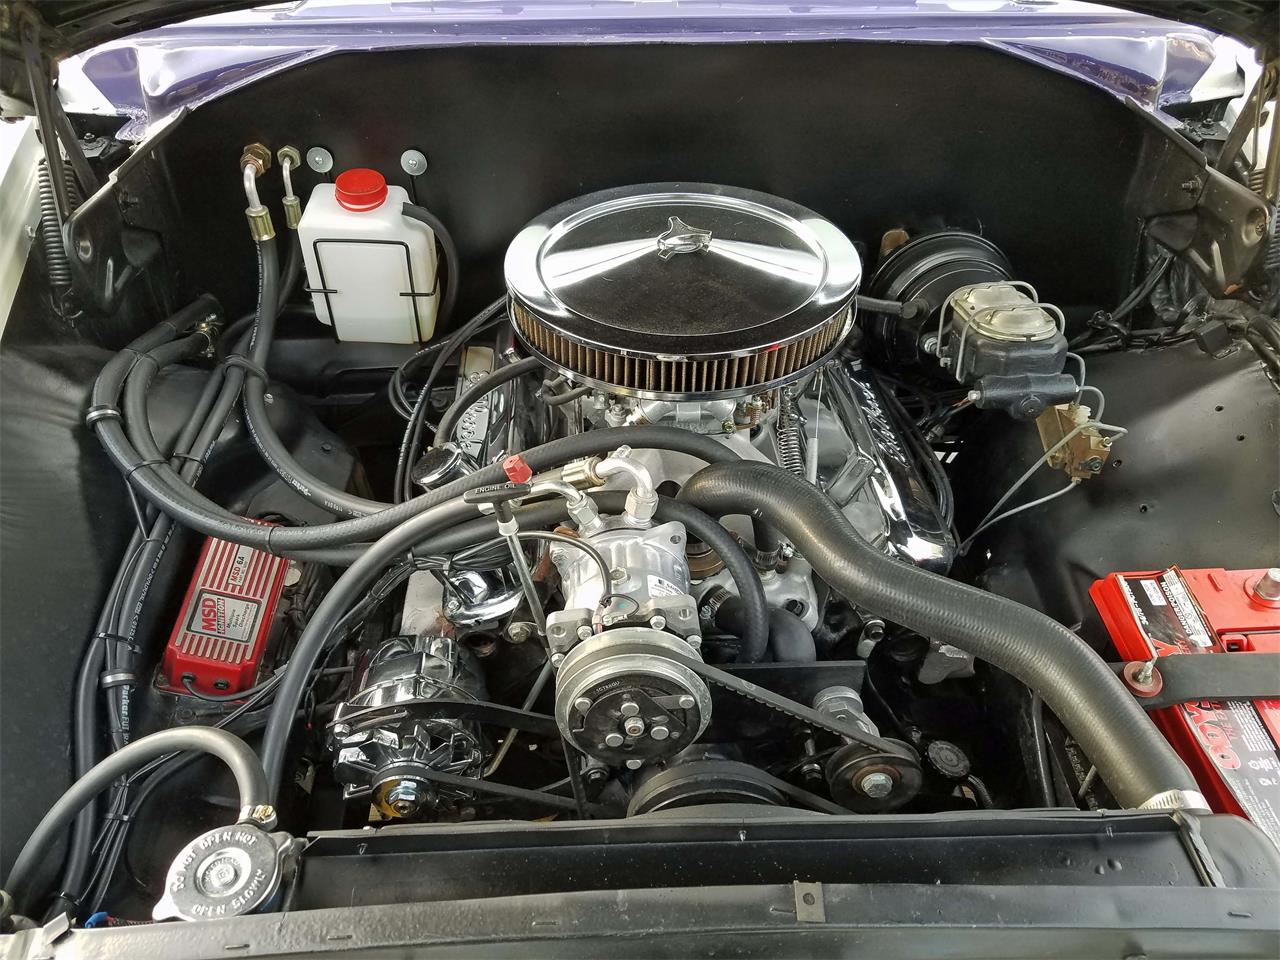 Large Picture of '55 Dodge Coronet Suburban located in Queen Creek Arizona - $22,500.00 Offered by a Private Seller - LGZ7